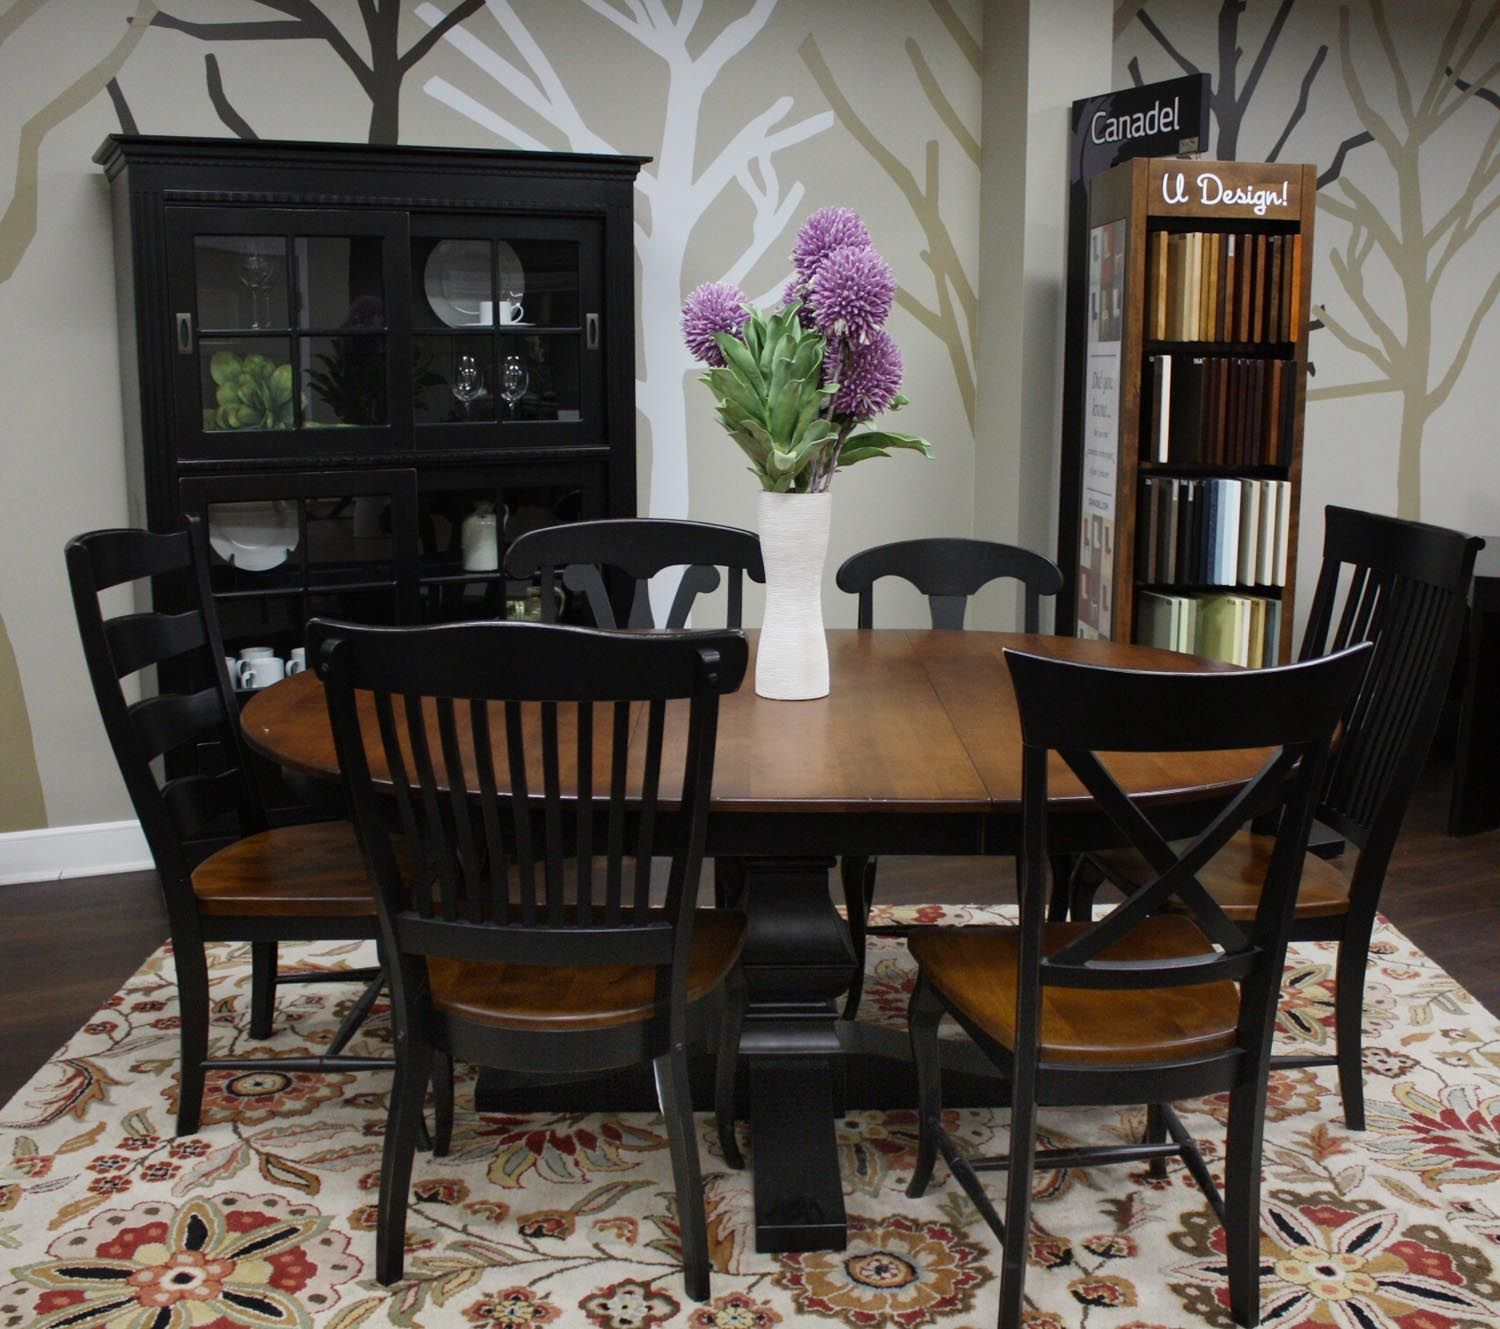 Canadel furniture dining table and chairs at Holman House ...